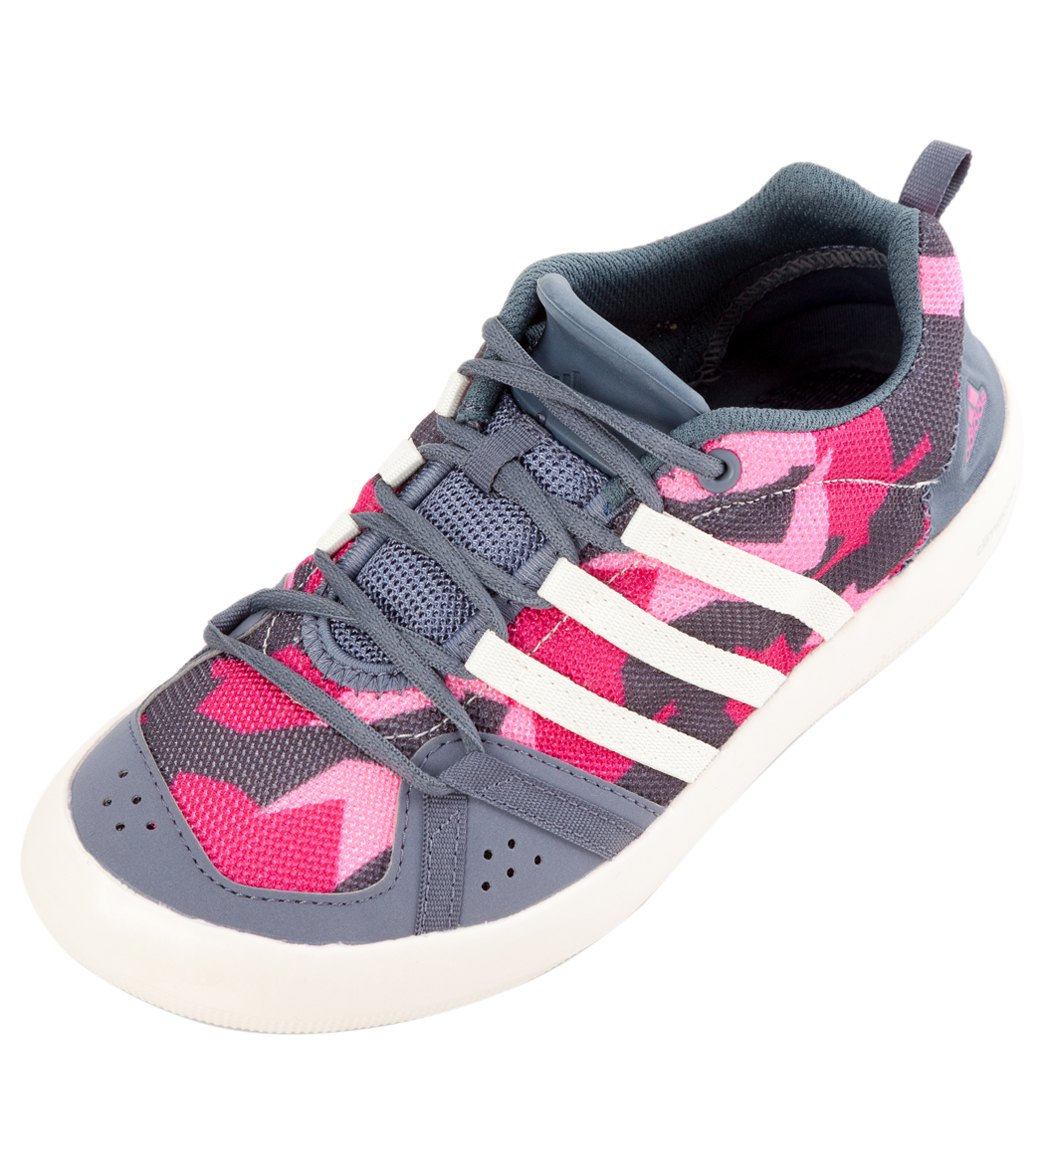 Climacool Adidas Kids' At Shoes Lace Boat K Water ORZWZ